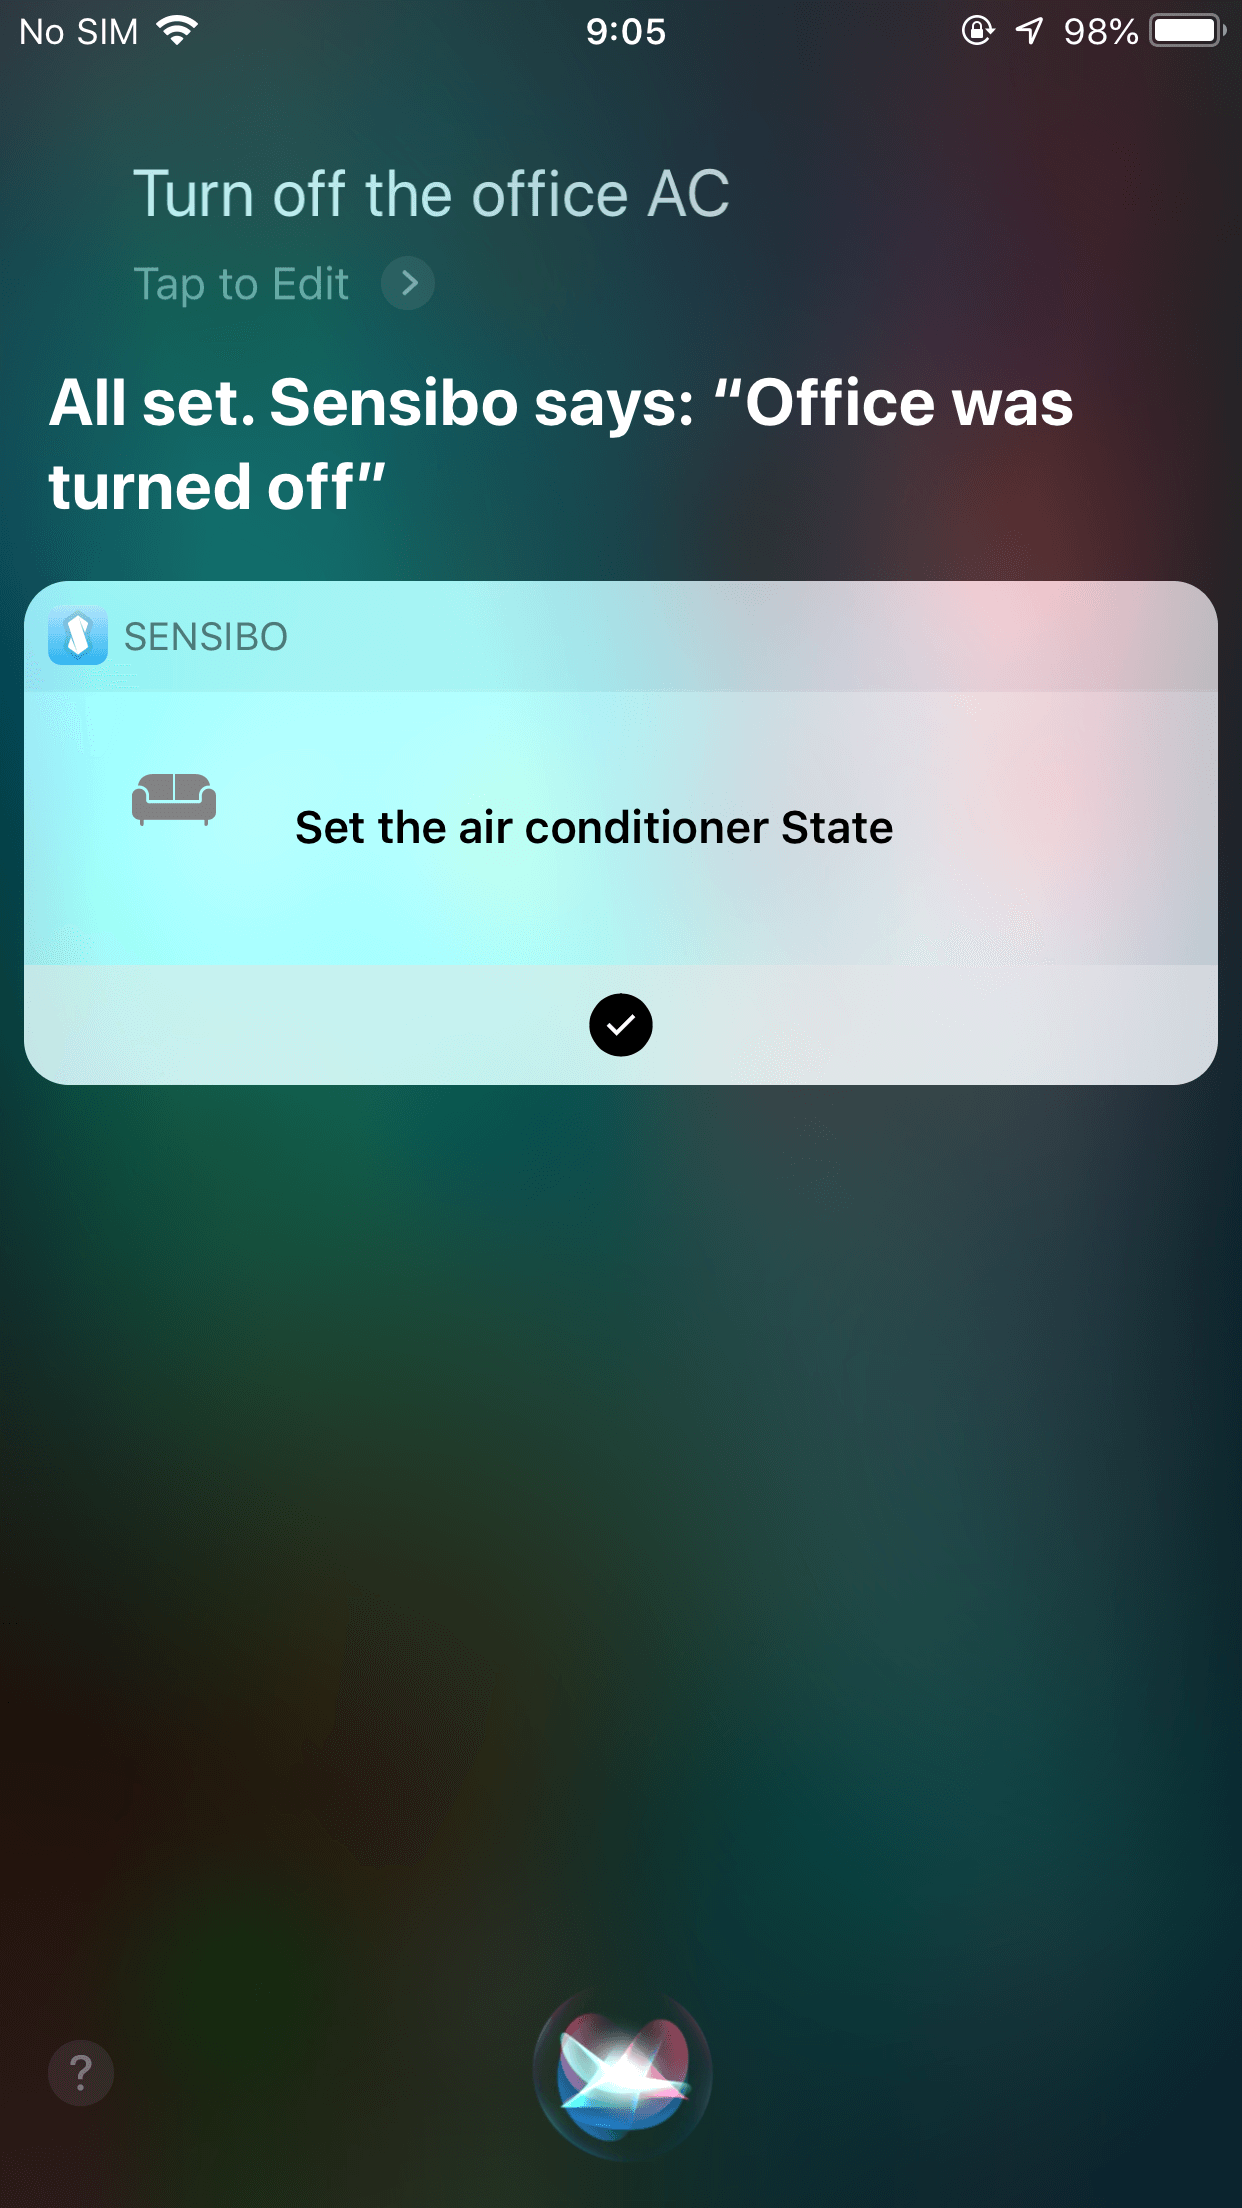 siri shortcut confirmation